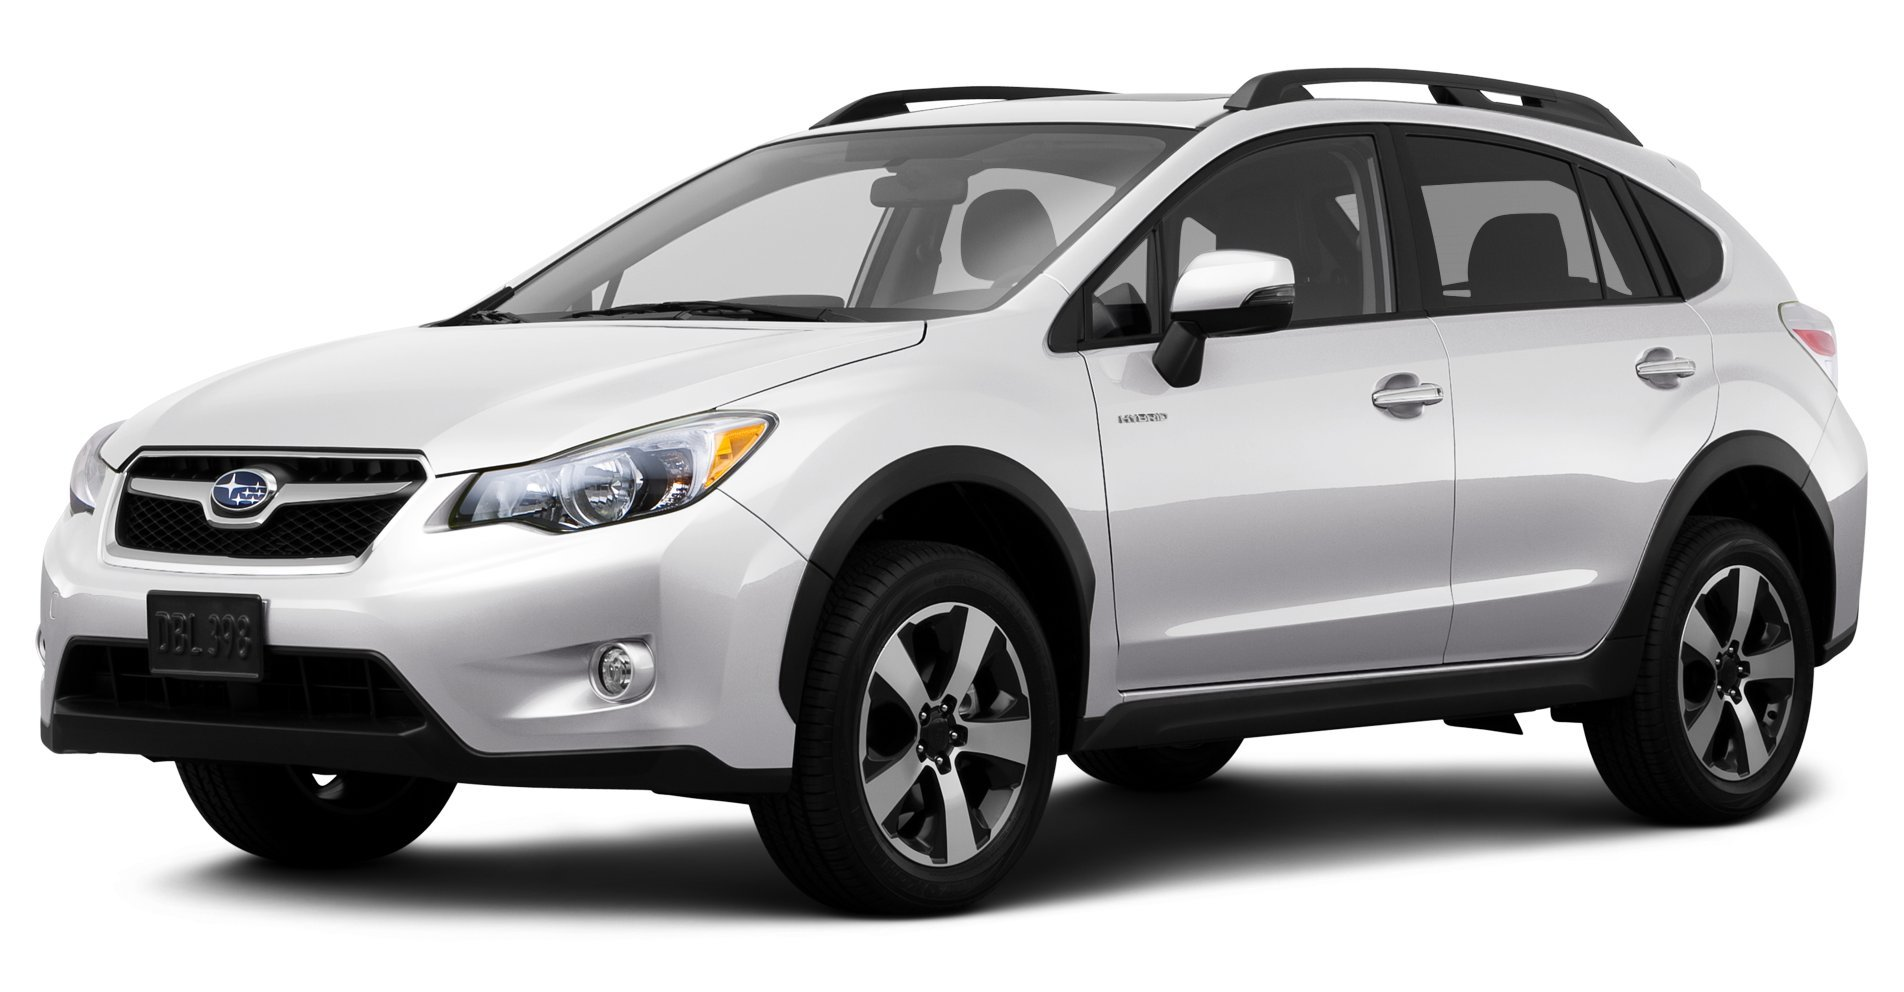 2014 Subaru Xv Crosstrek 2.0I Limited >> Amazon Com 2014 Subaru Xv Crosstrek Reviews Images And